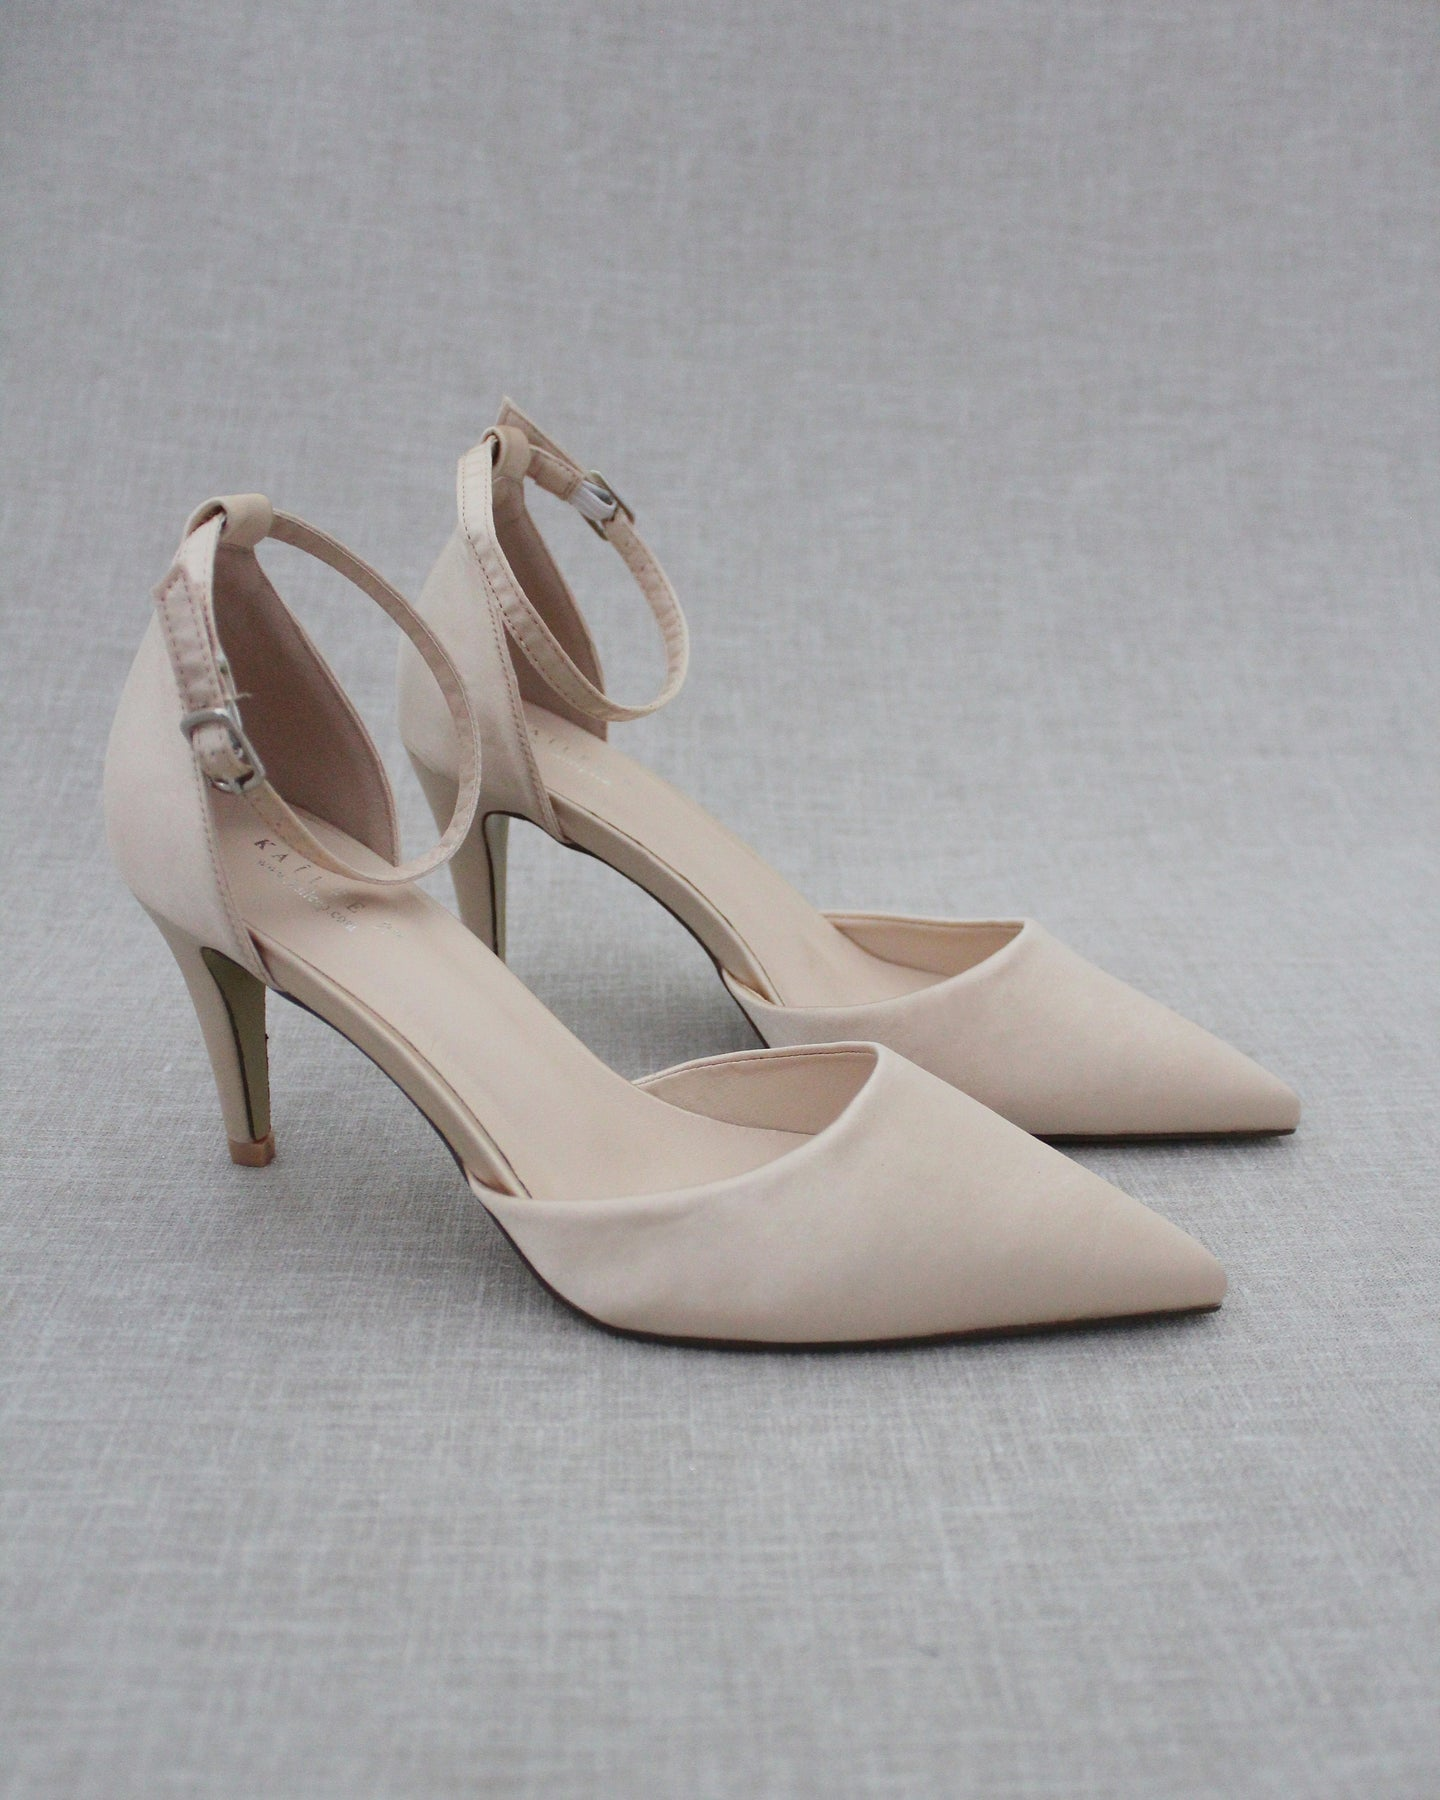 LIGHT BLUE SATIN Pointy Toe flats with sparkly rhinestones across the toe with satin ankle tie Bridesmaid Shoes Somet Women Wedding Shoes